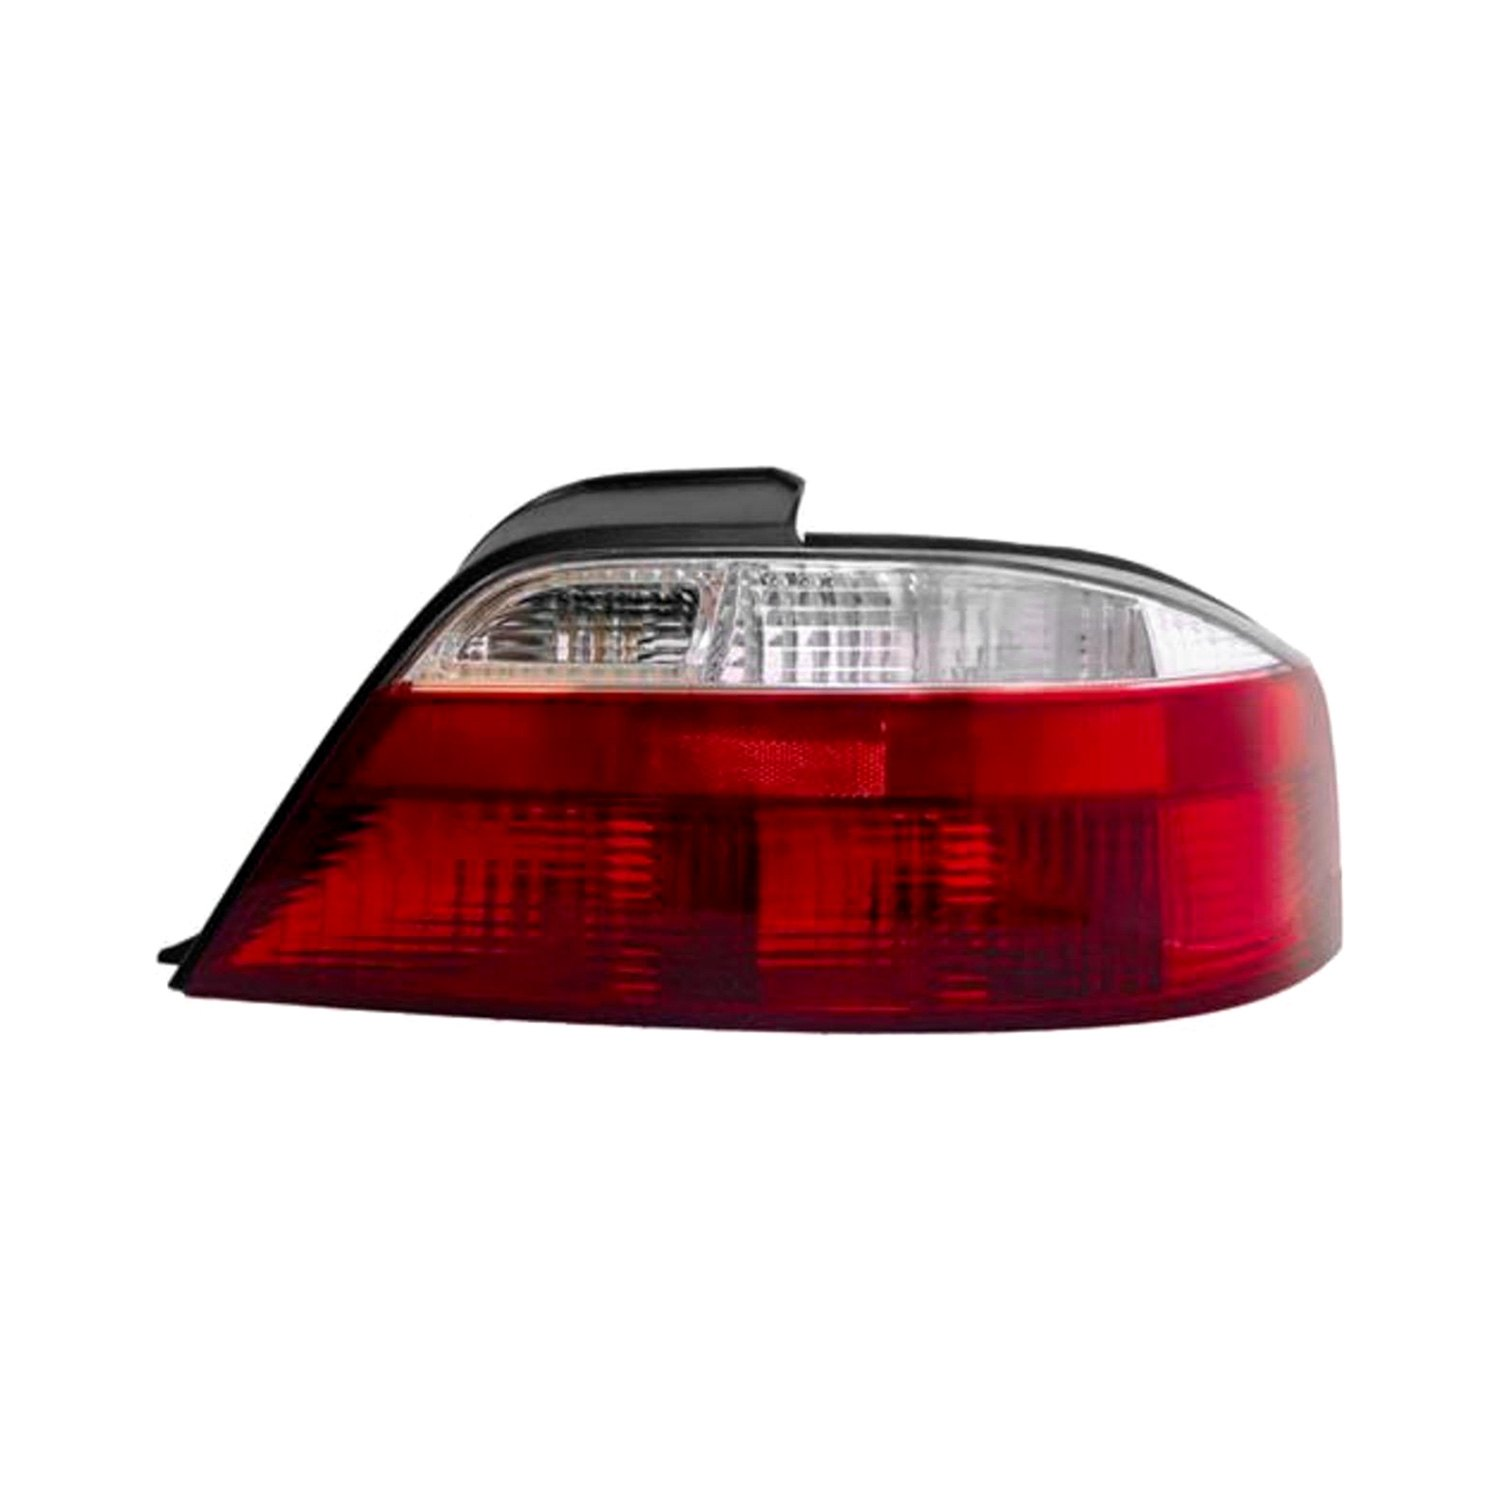 [2003 Acura Tl How To Replace Tail Light Assembly